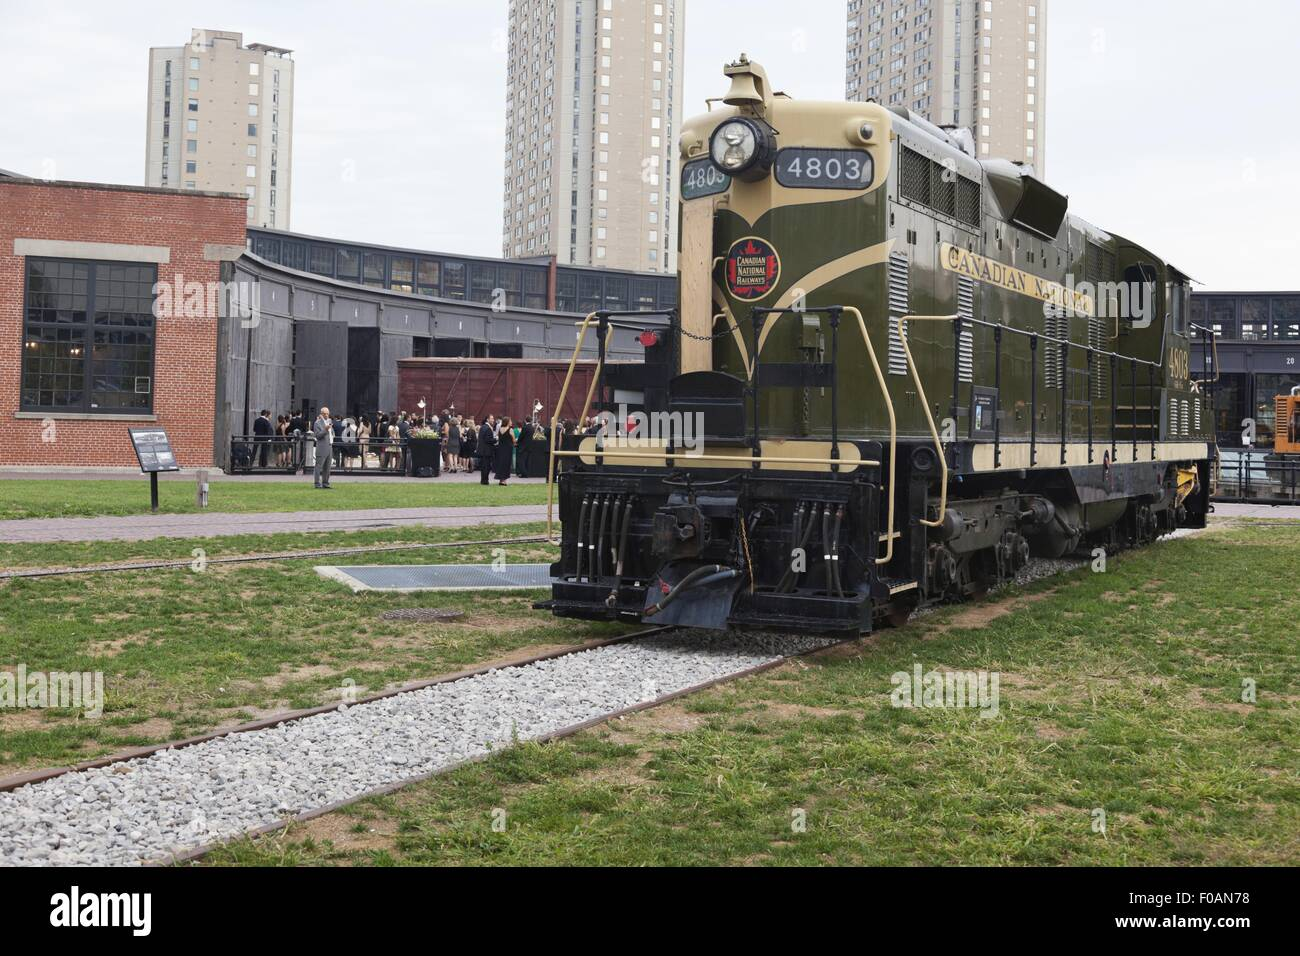 Disused locomotive in Canadian National Roundhouse Park, Toronto, Canada - Stock Image